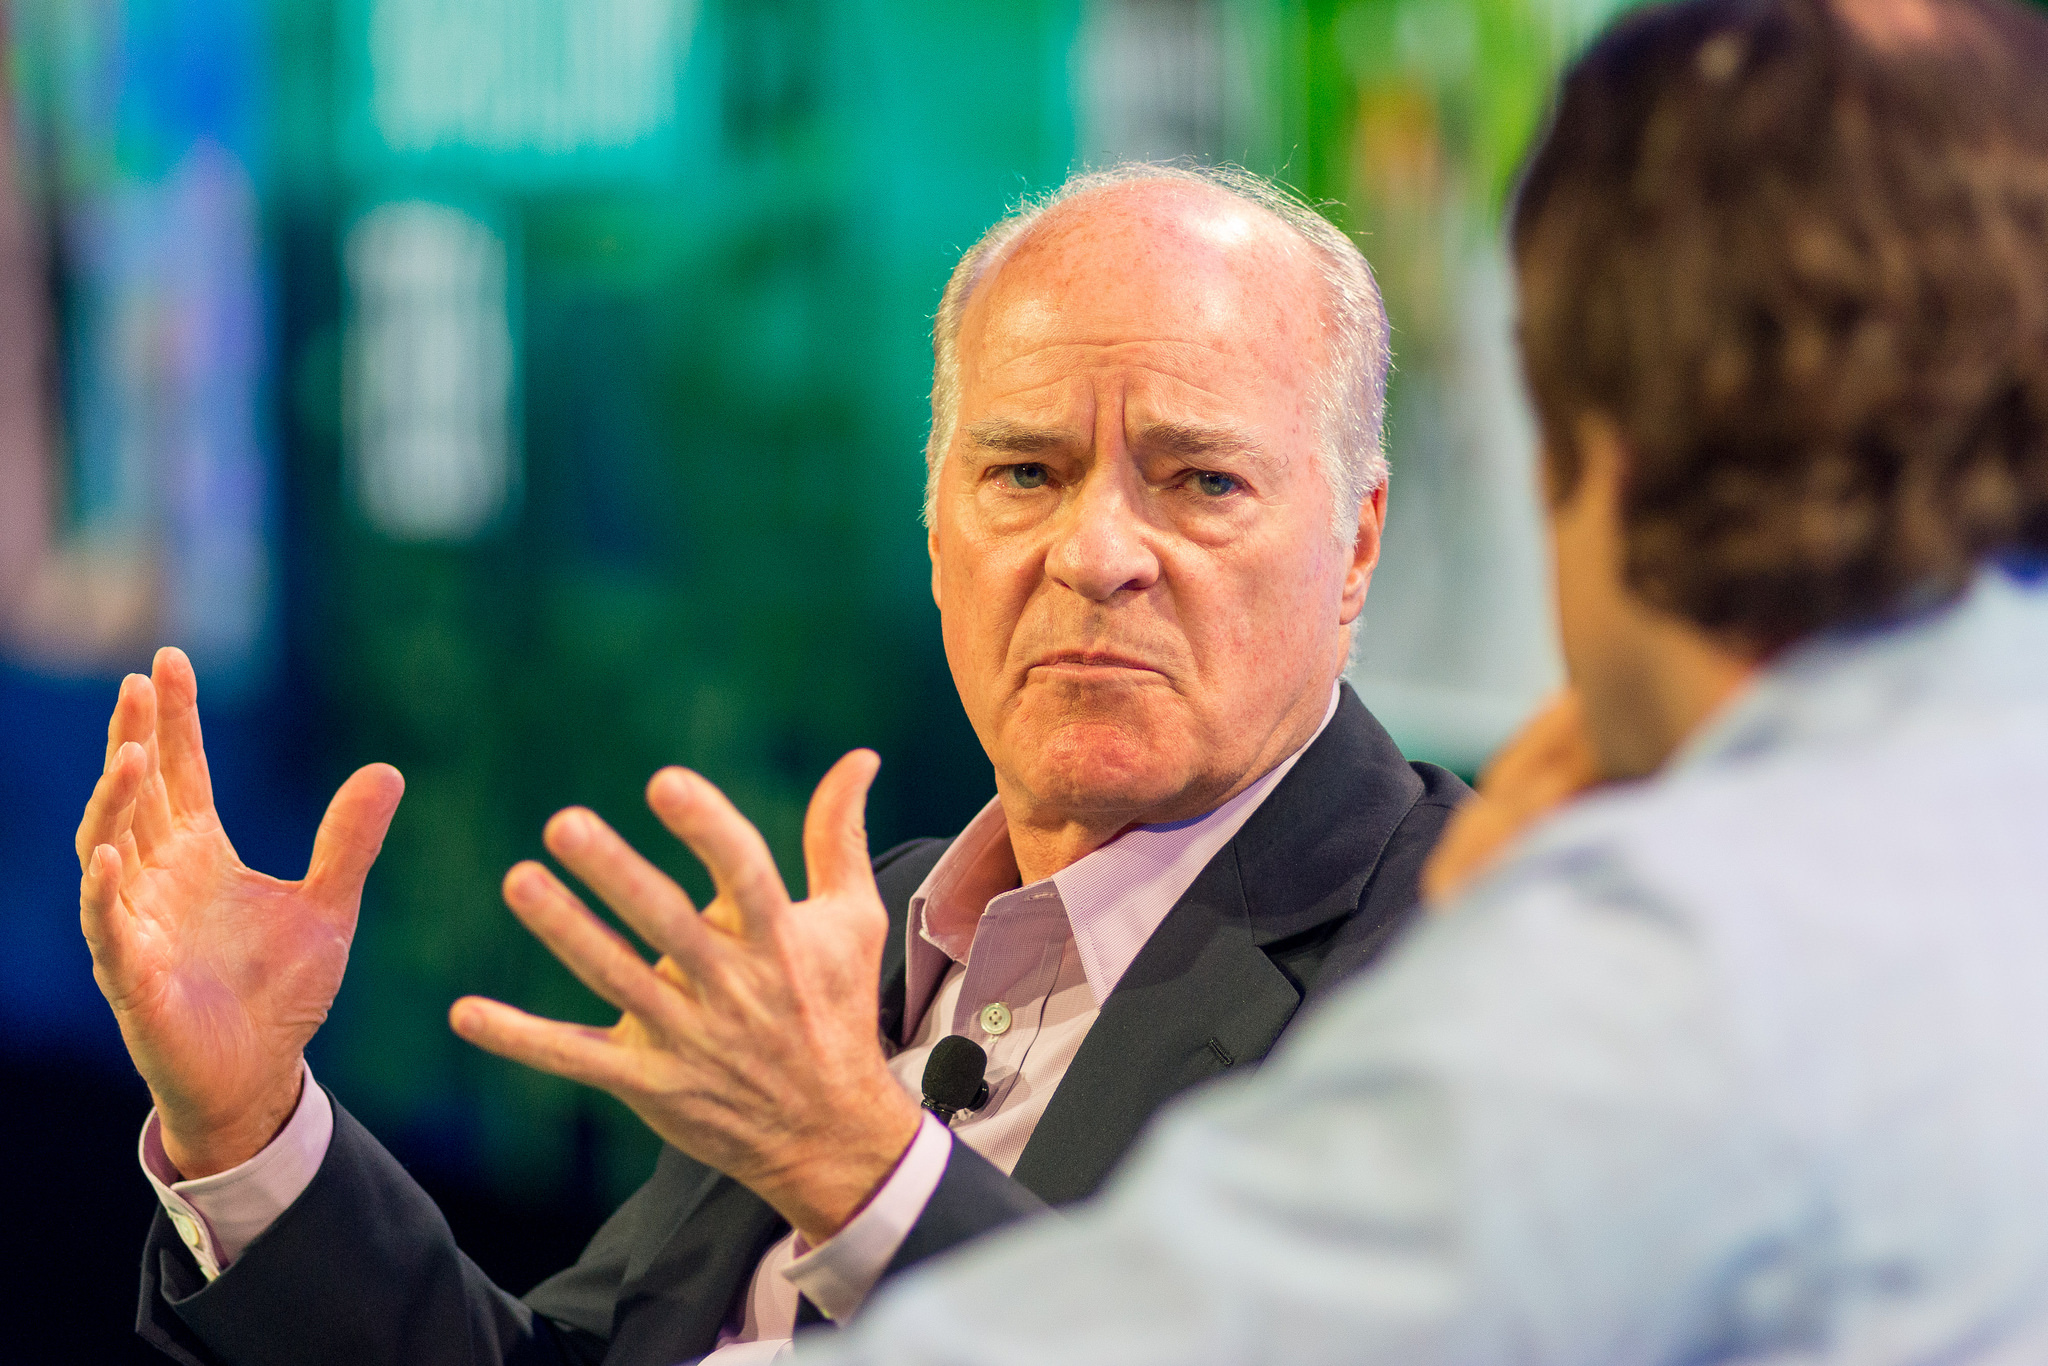 KKR co-CEO Henry Kravis at Fortune Brainstorm Tech